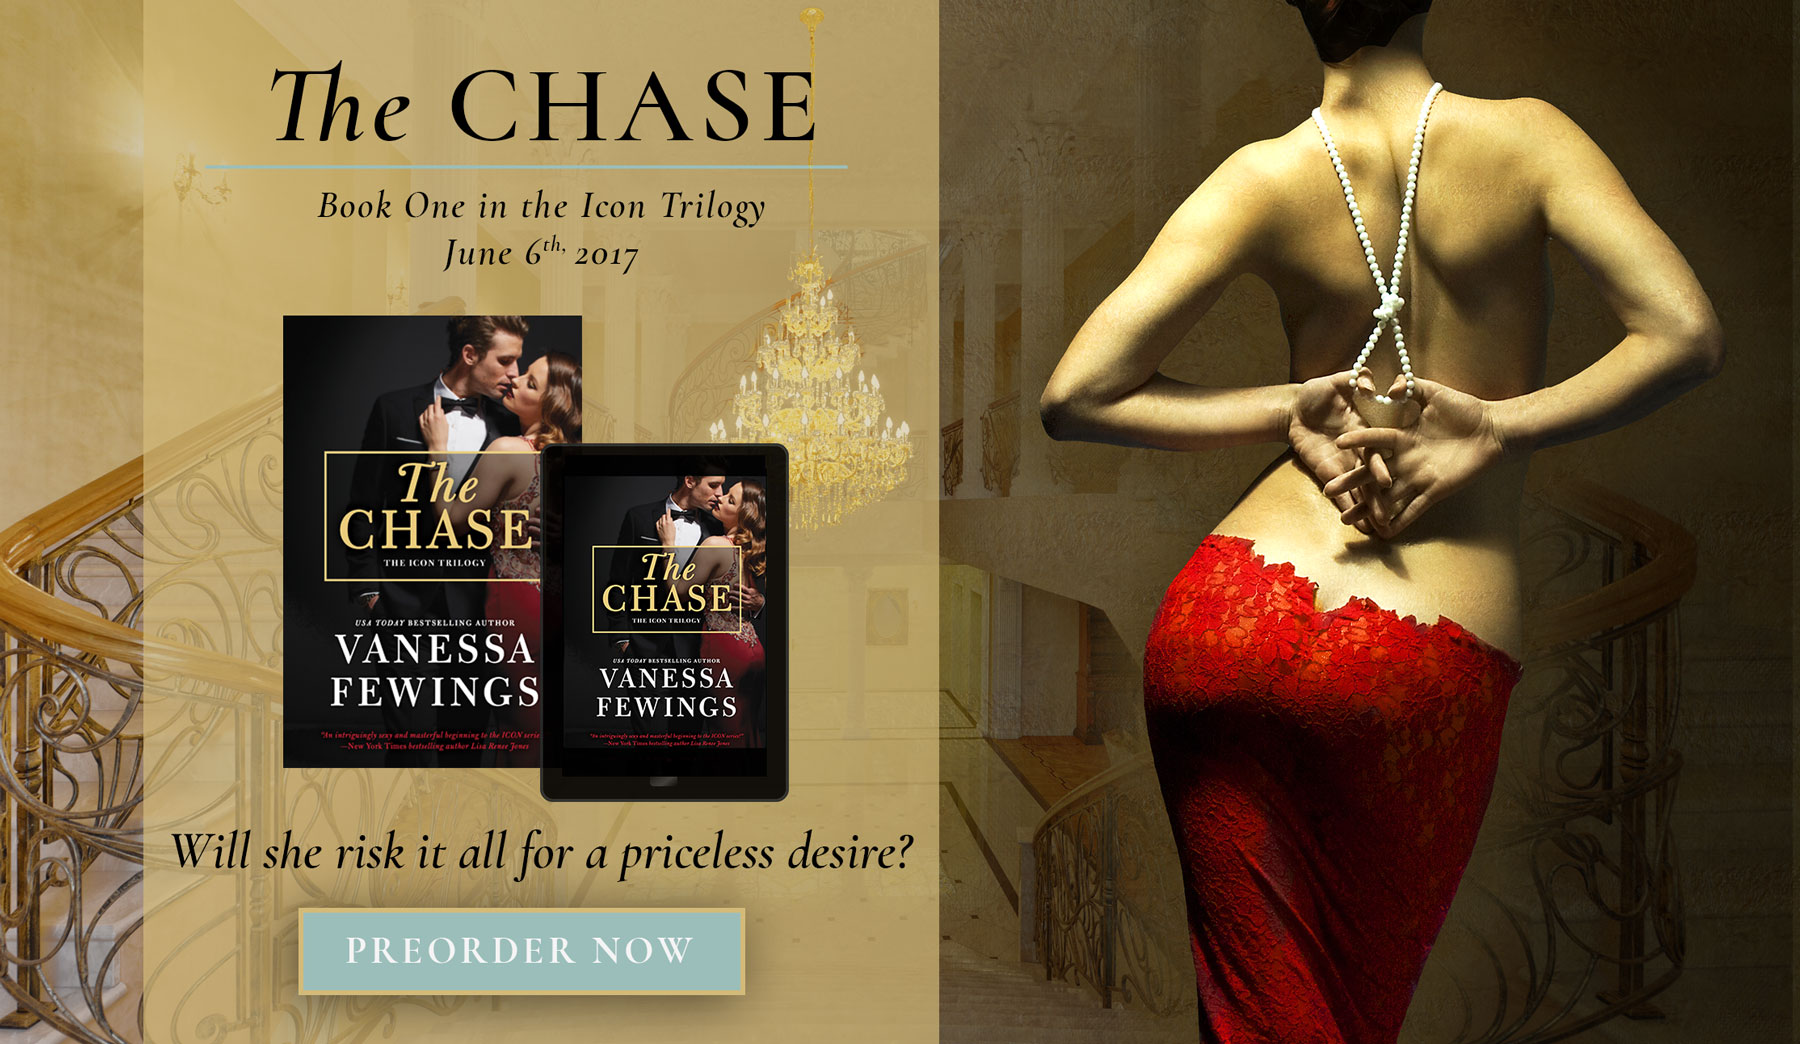 The Chase, book 1 in the Icon Trilogy by Vanessa Fewings